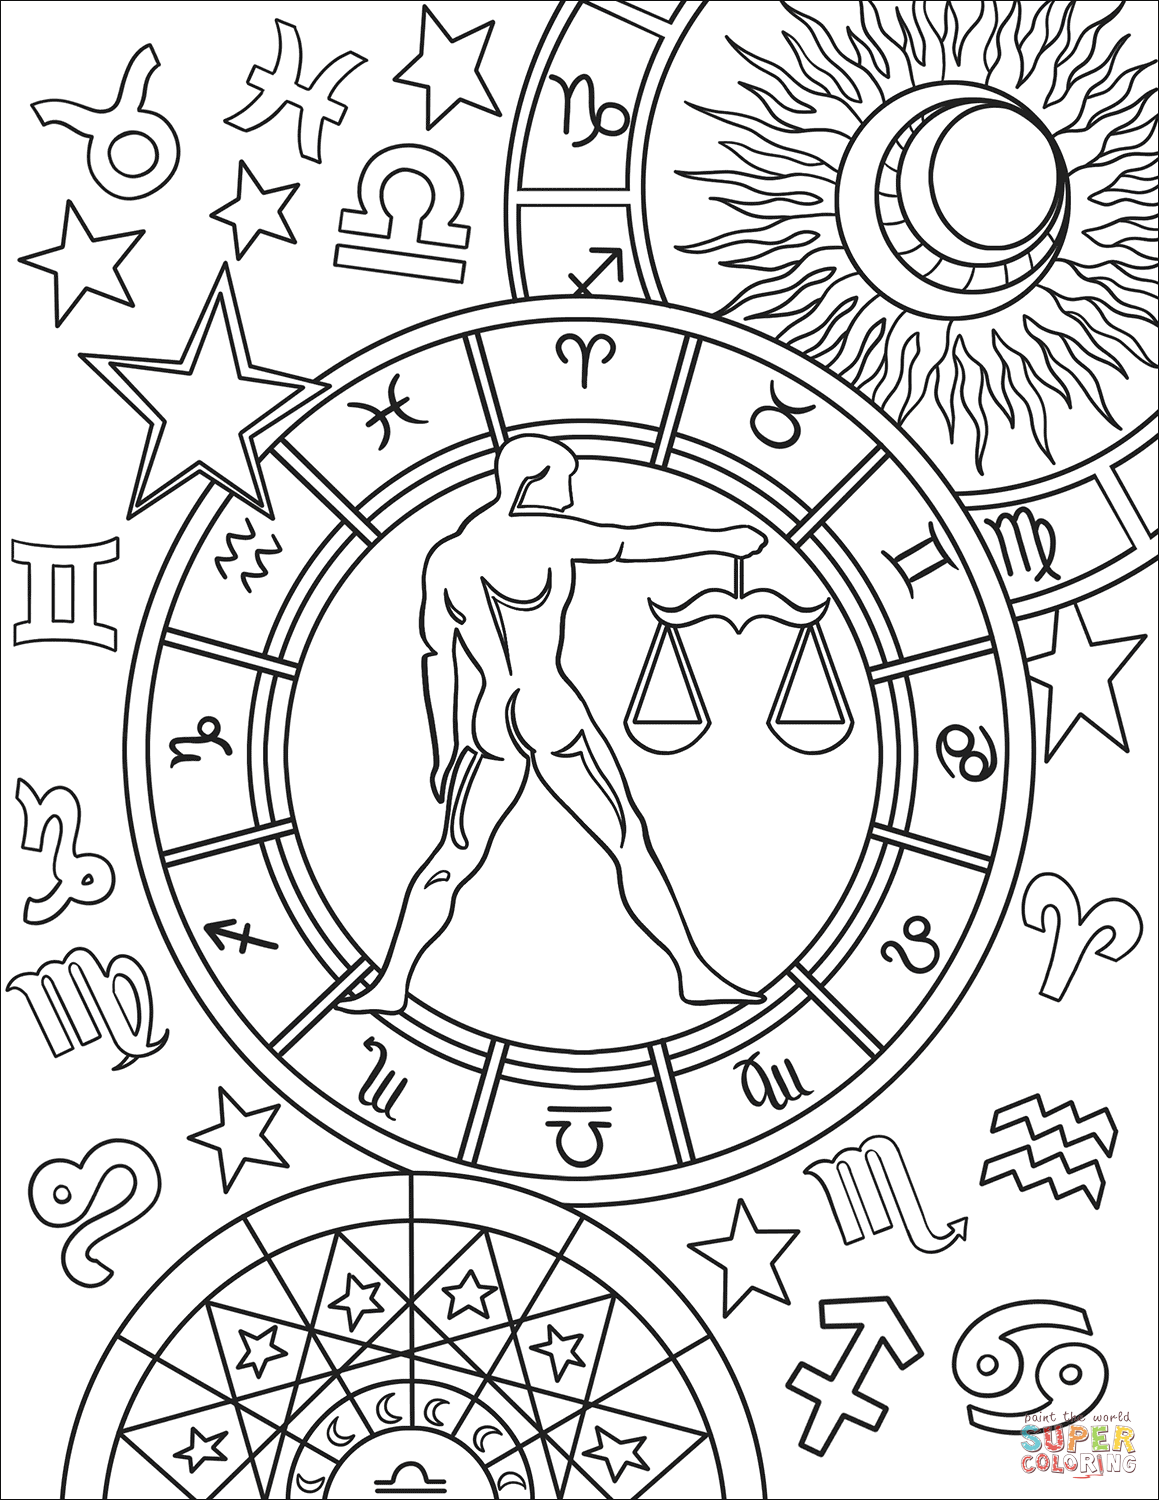 zodiac coloring pages sagittarius astrology coloring download sagittarius coloring pages zodiac